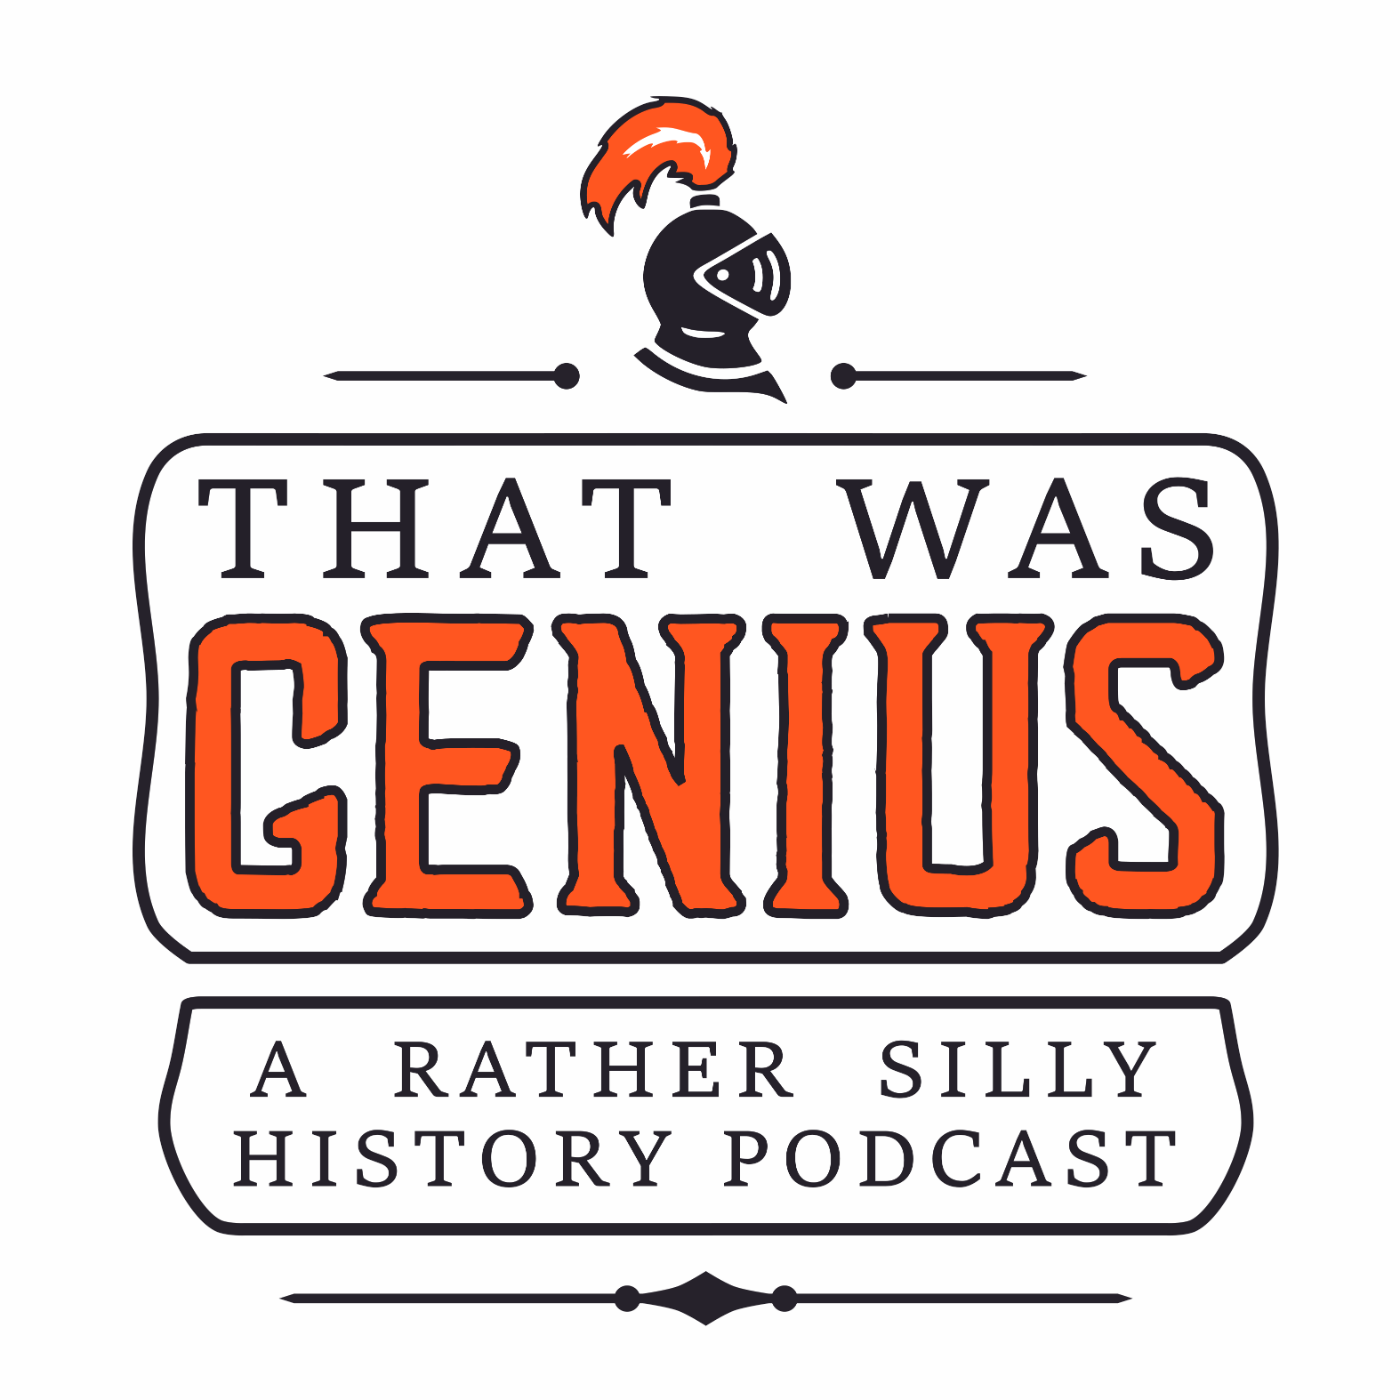 That Was Genius - A Funny History Podcast podcast show image